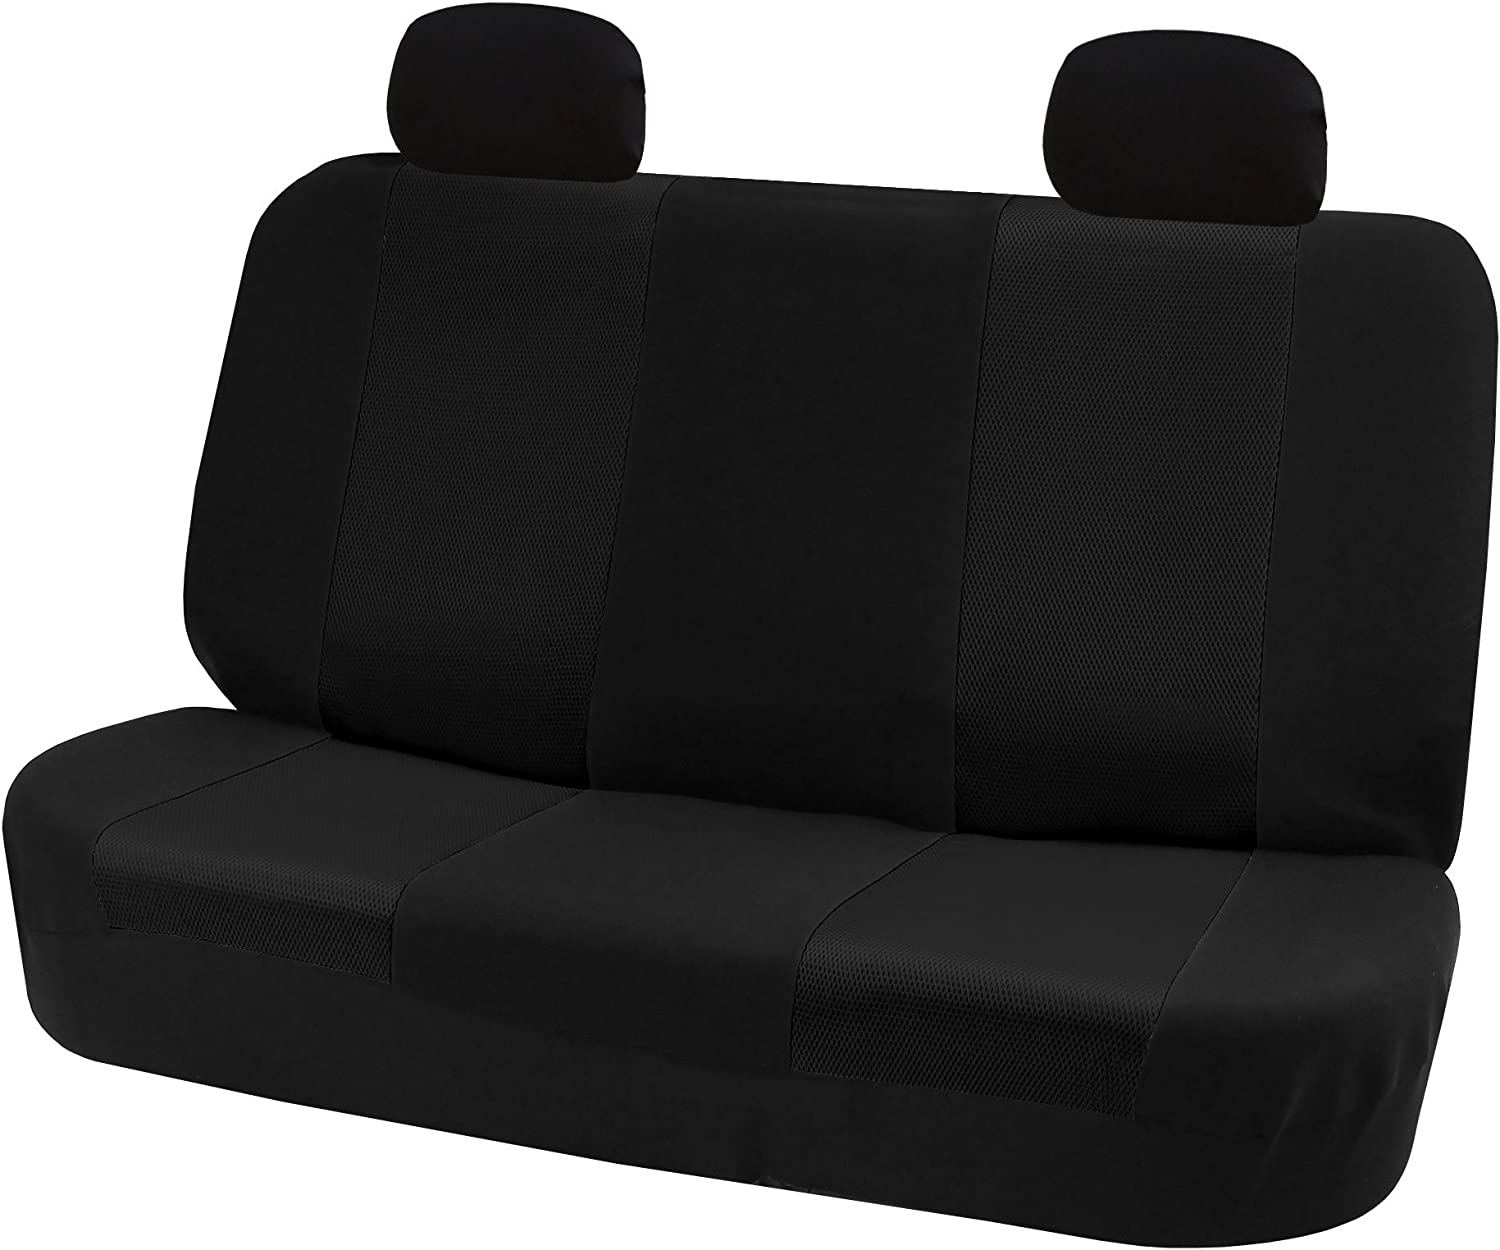 All Purpose Classic Cloth Seat Covers Gray//Black SUV Fit Most Car FH Group FH-FB302114 Full Set Truck or Van